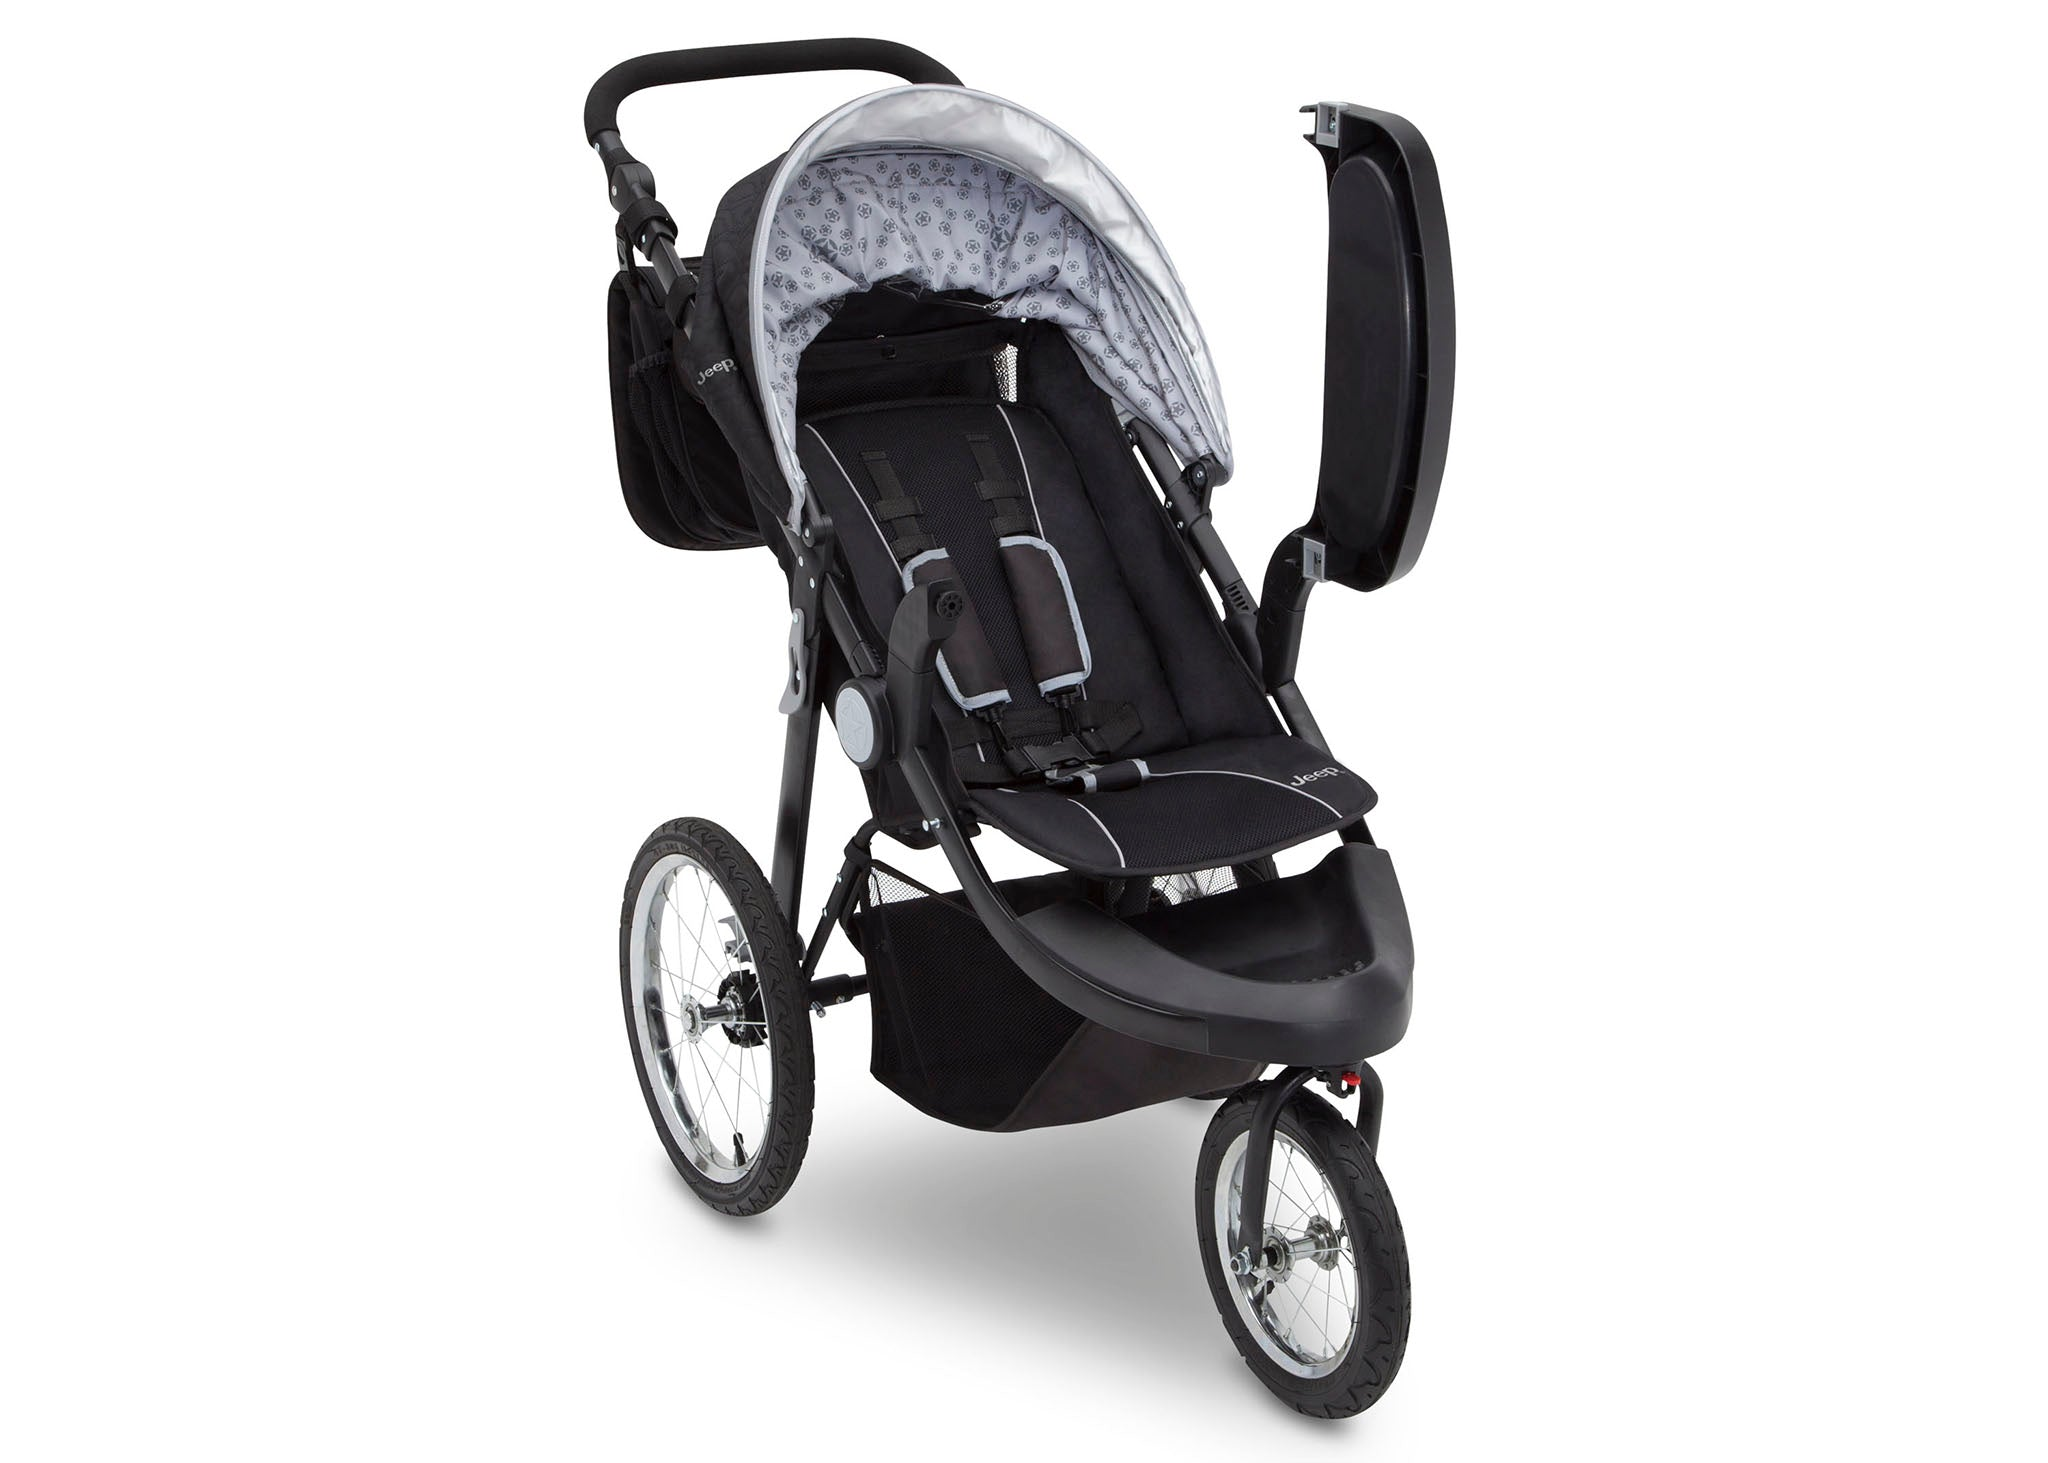 Delta Children J is for Jeep Brand Cross-Country Sport Plus Jogger, Charcoal Galaxy (2271) with Child Tray Open, Right Side View, a2a